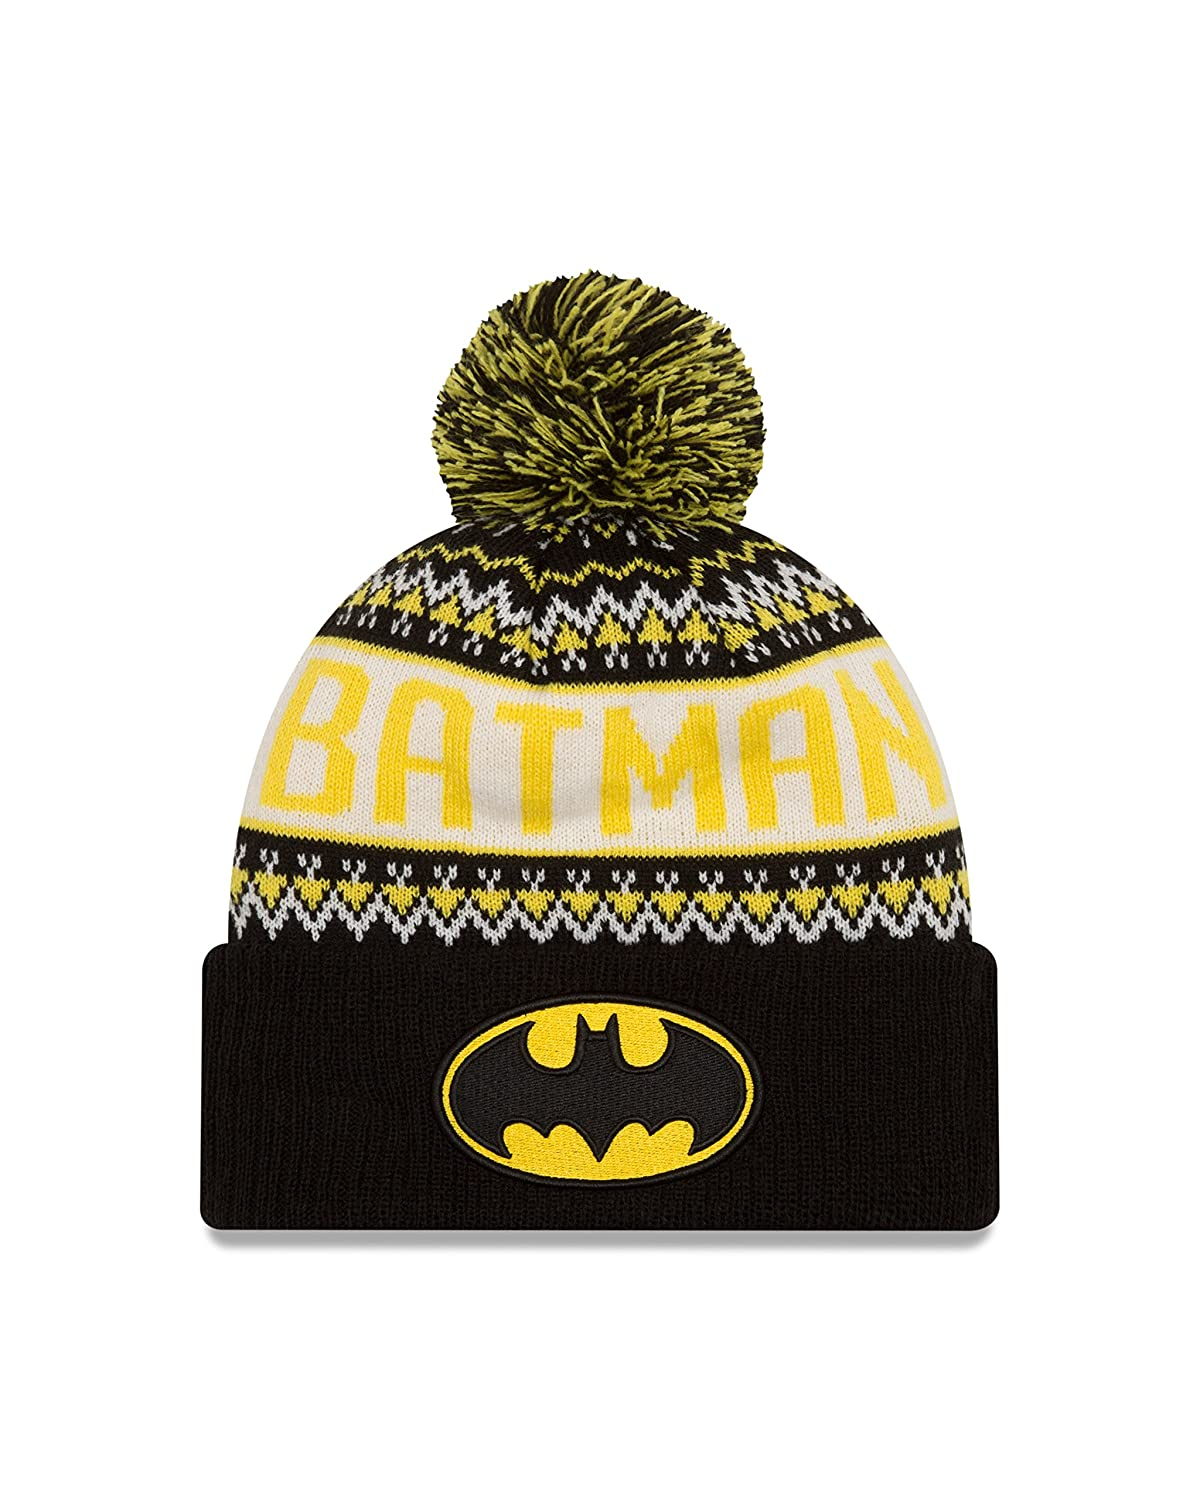 Batman DC Comics New Era Wintry Pom Cuffed Knit Hat with Pom